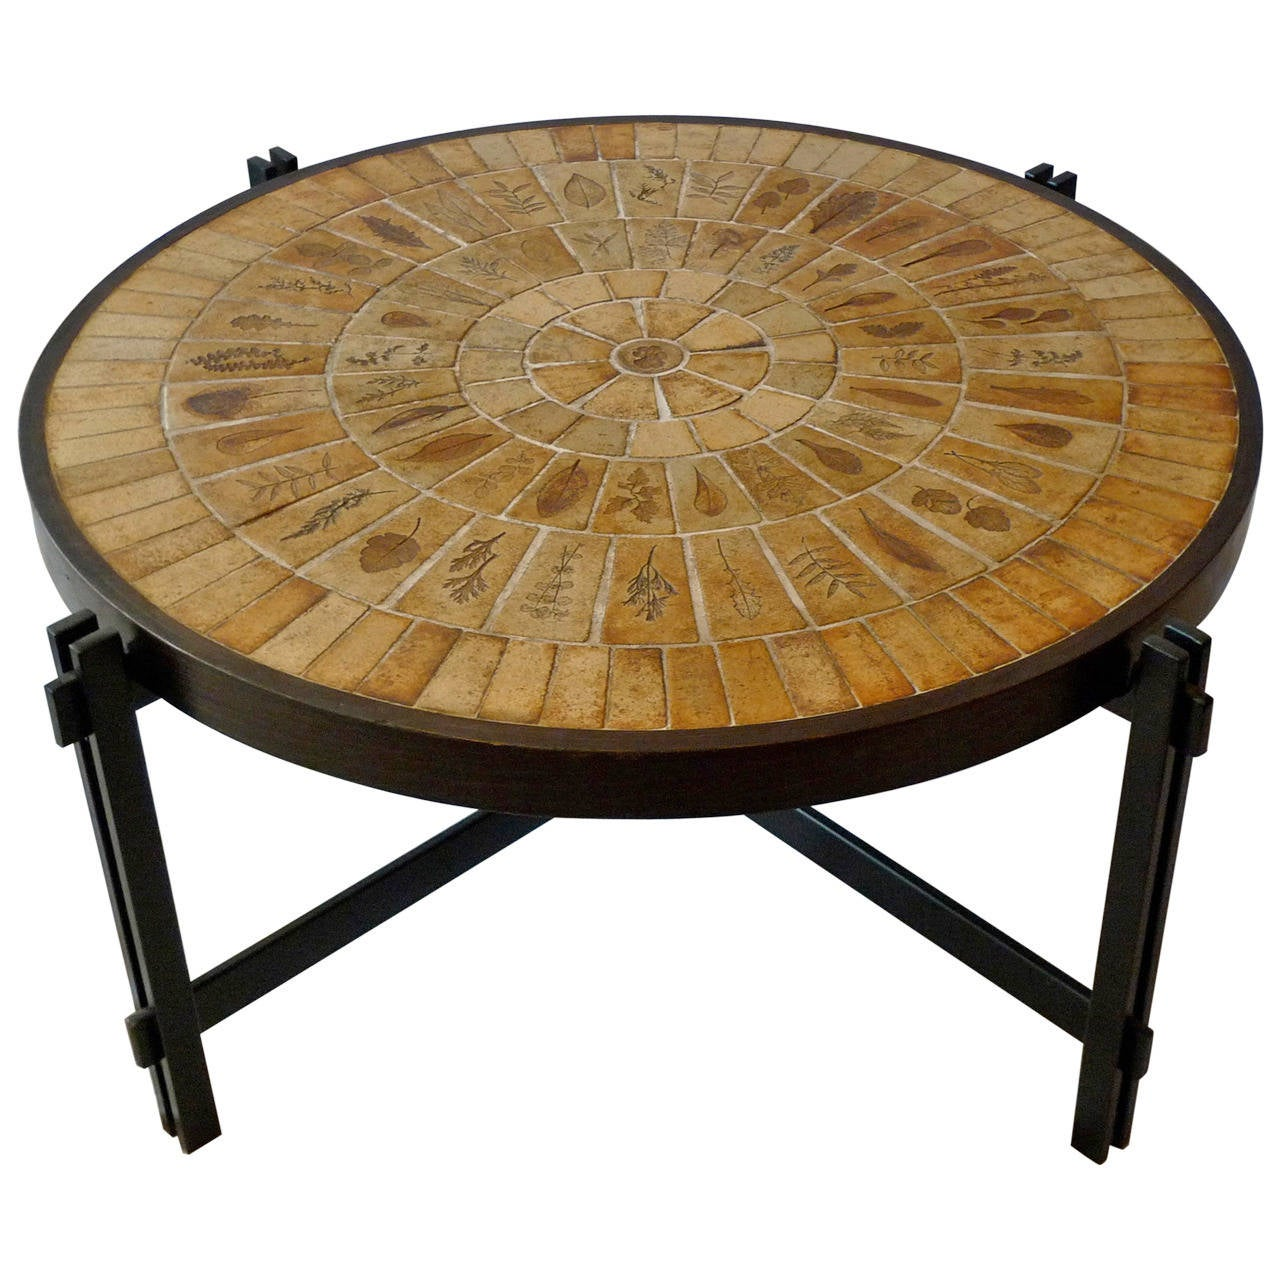 Small Modern Coffee Table 1960s For Sale At 1stdibs: French 1960s Round Coffee Table In Tile And Iron For Sale